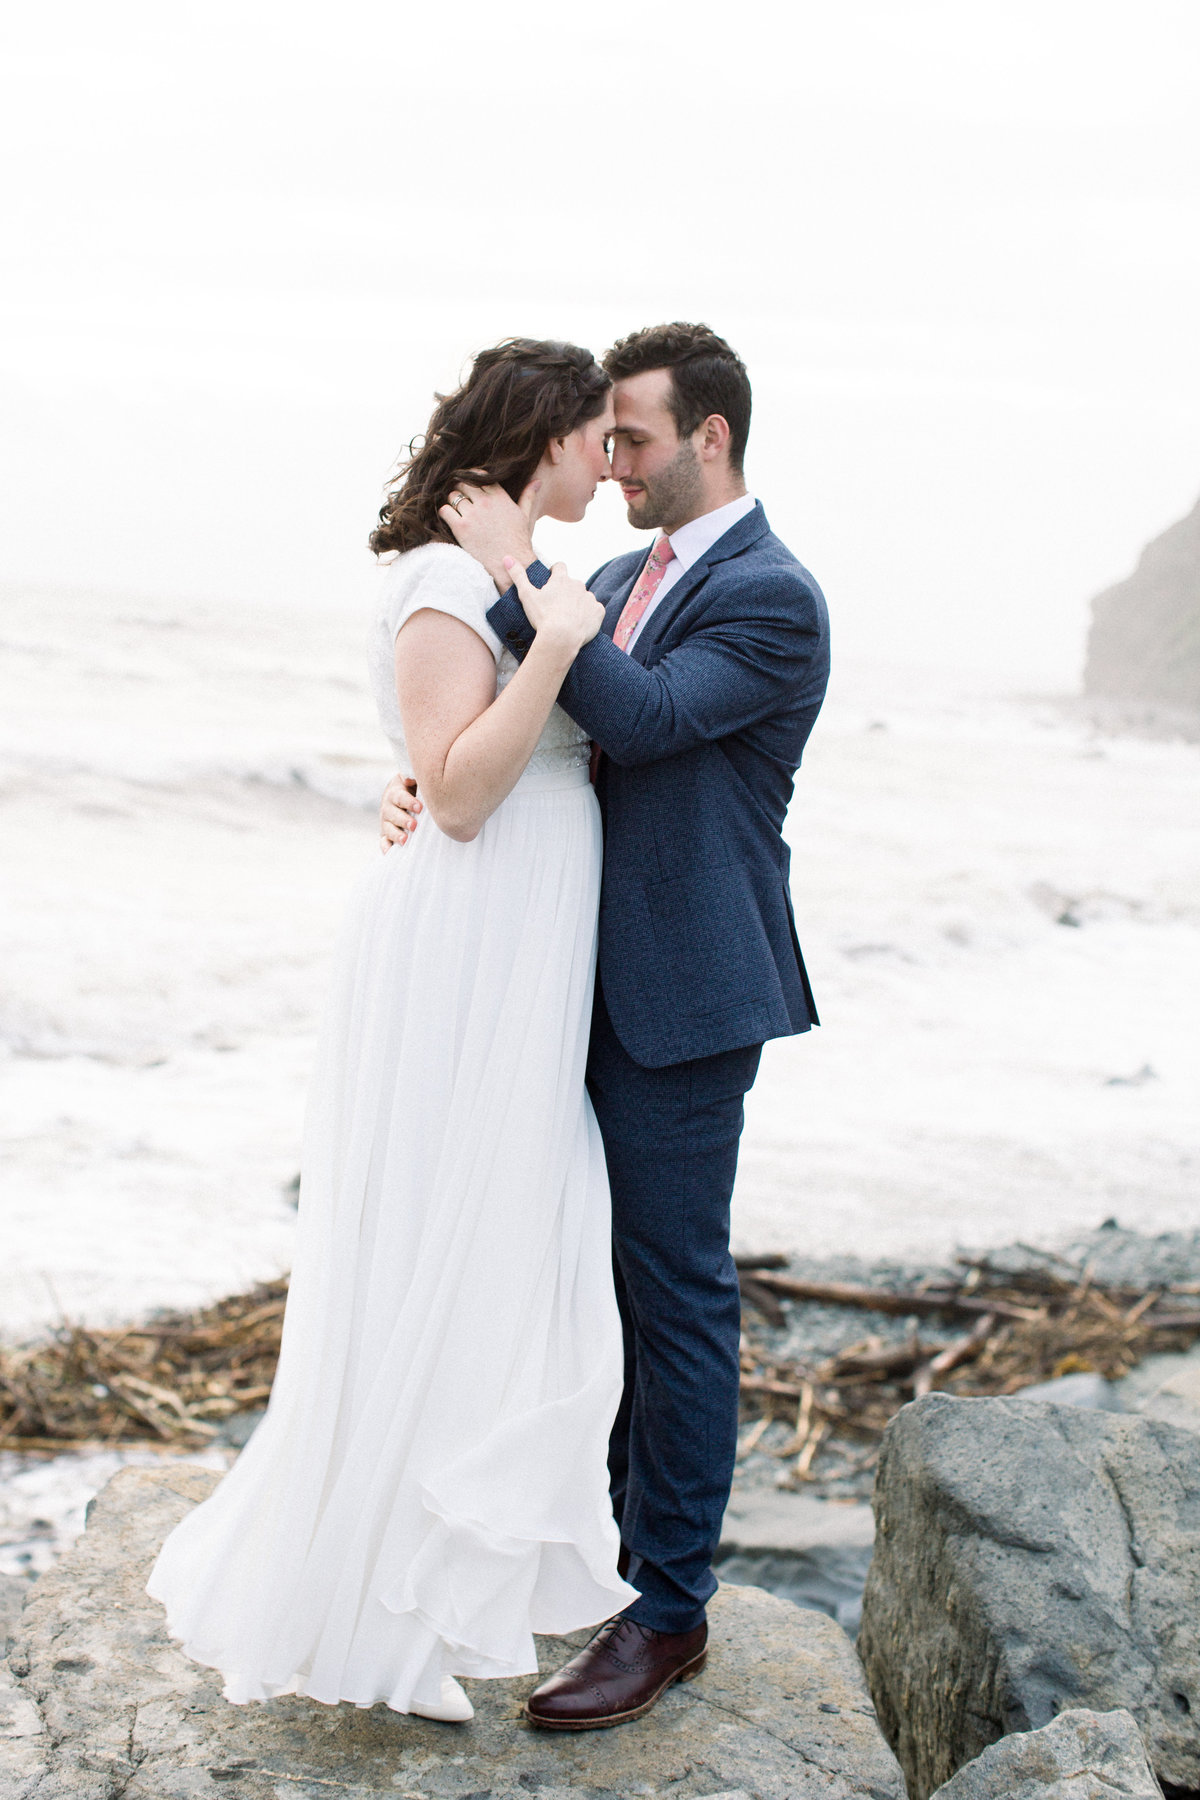 Ashley_Freehan_Photography_California_Wedding_Photographer_Blog_-21